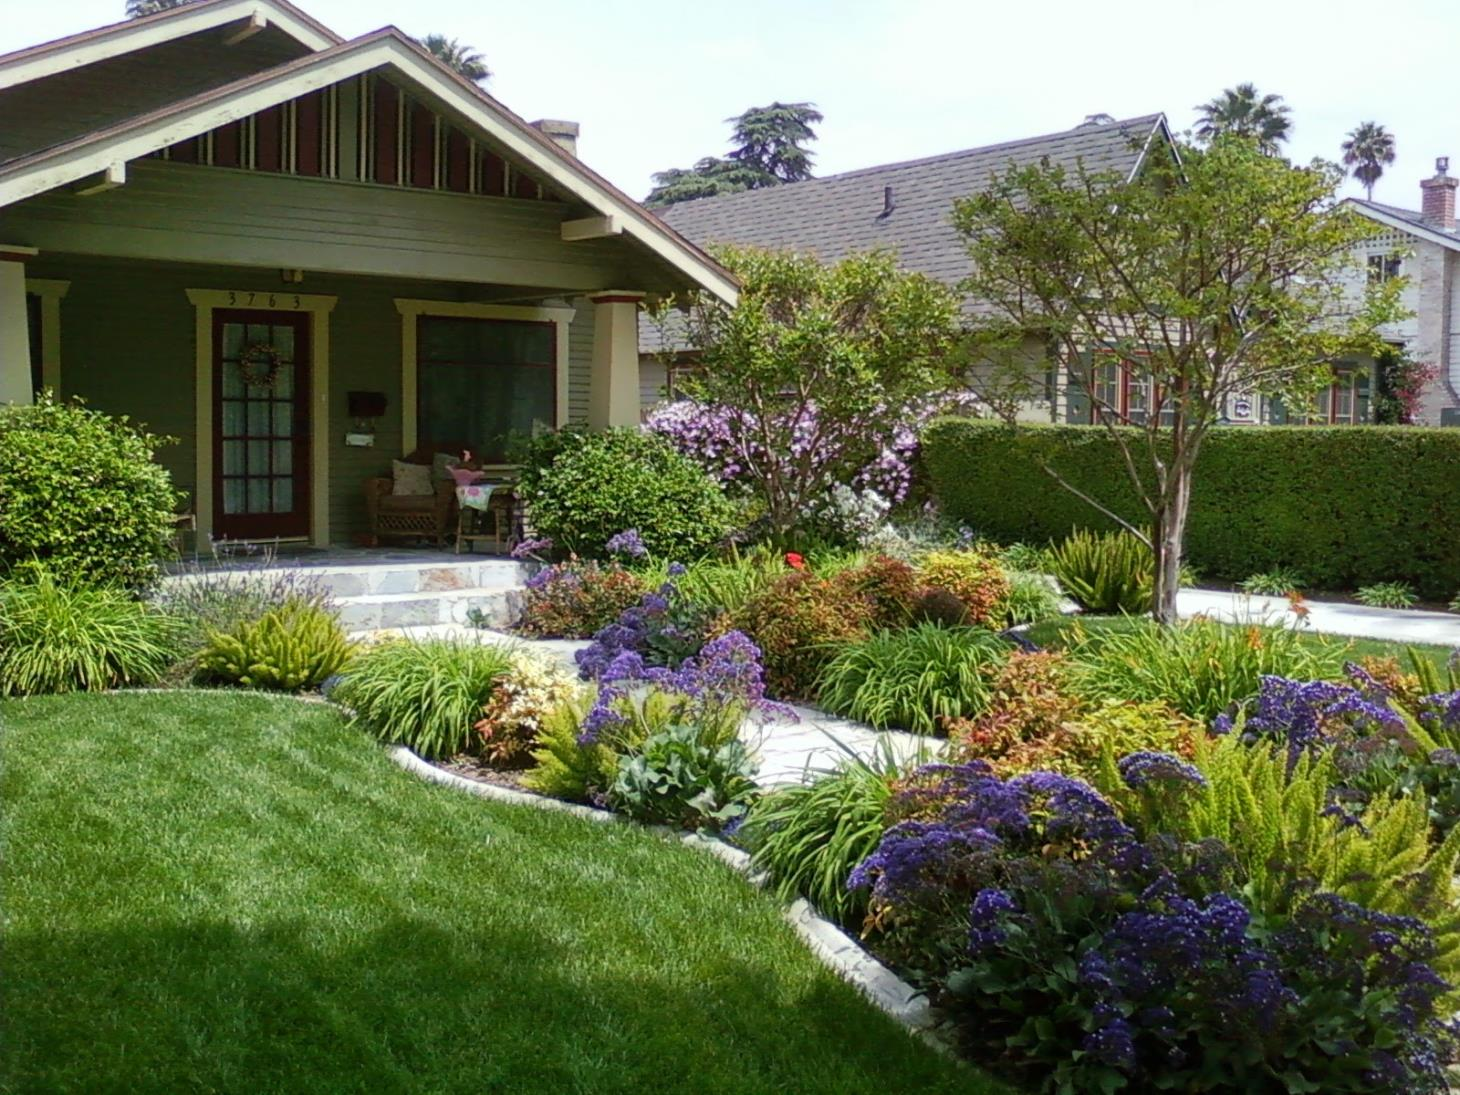 Earth-Tones Landscaping image 7